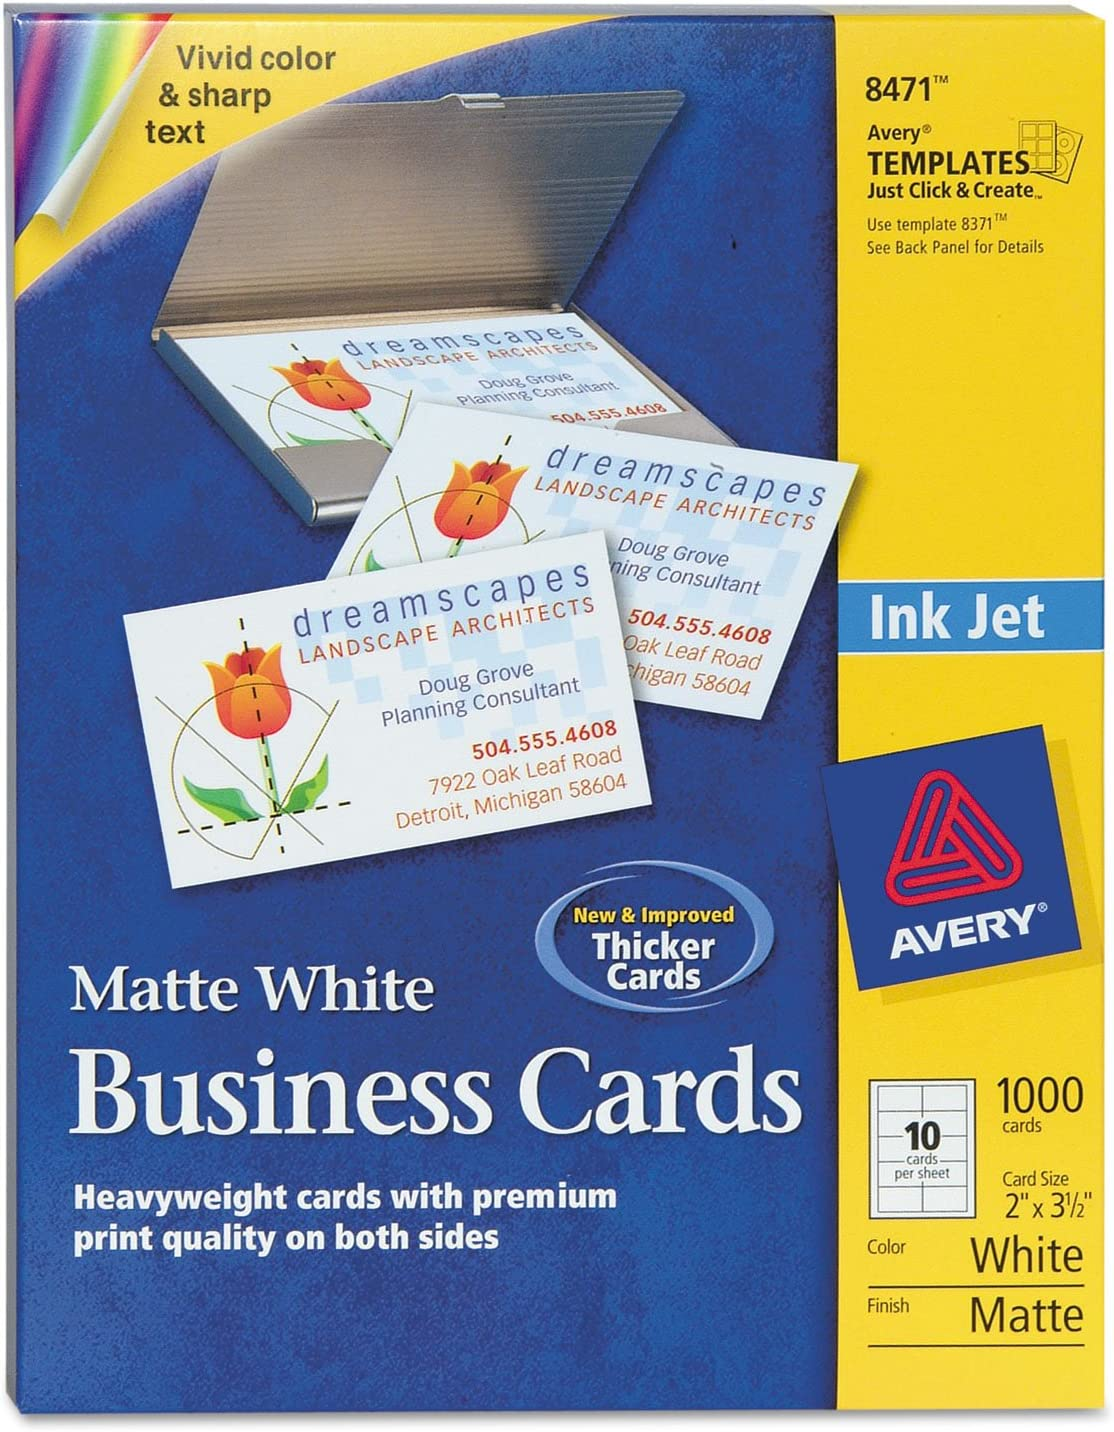 Avery 8471 Brand new Microperf Business Cards Inkjet 2 Wh x 3-1 Matte Lowest price challenge